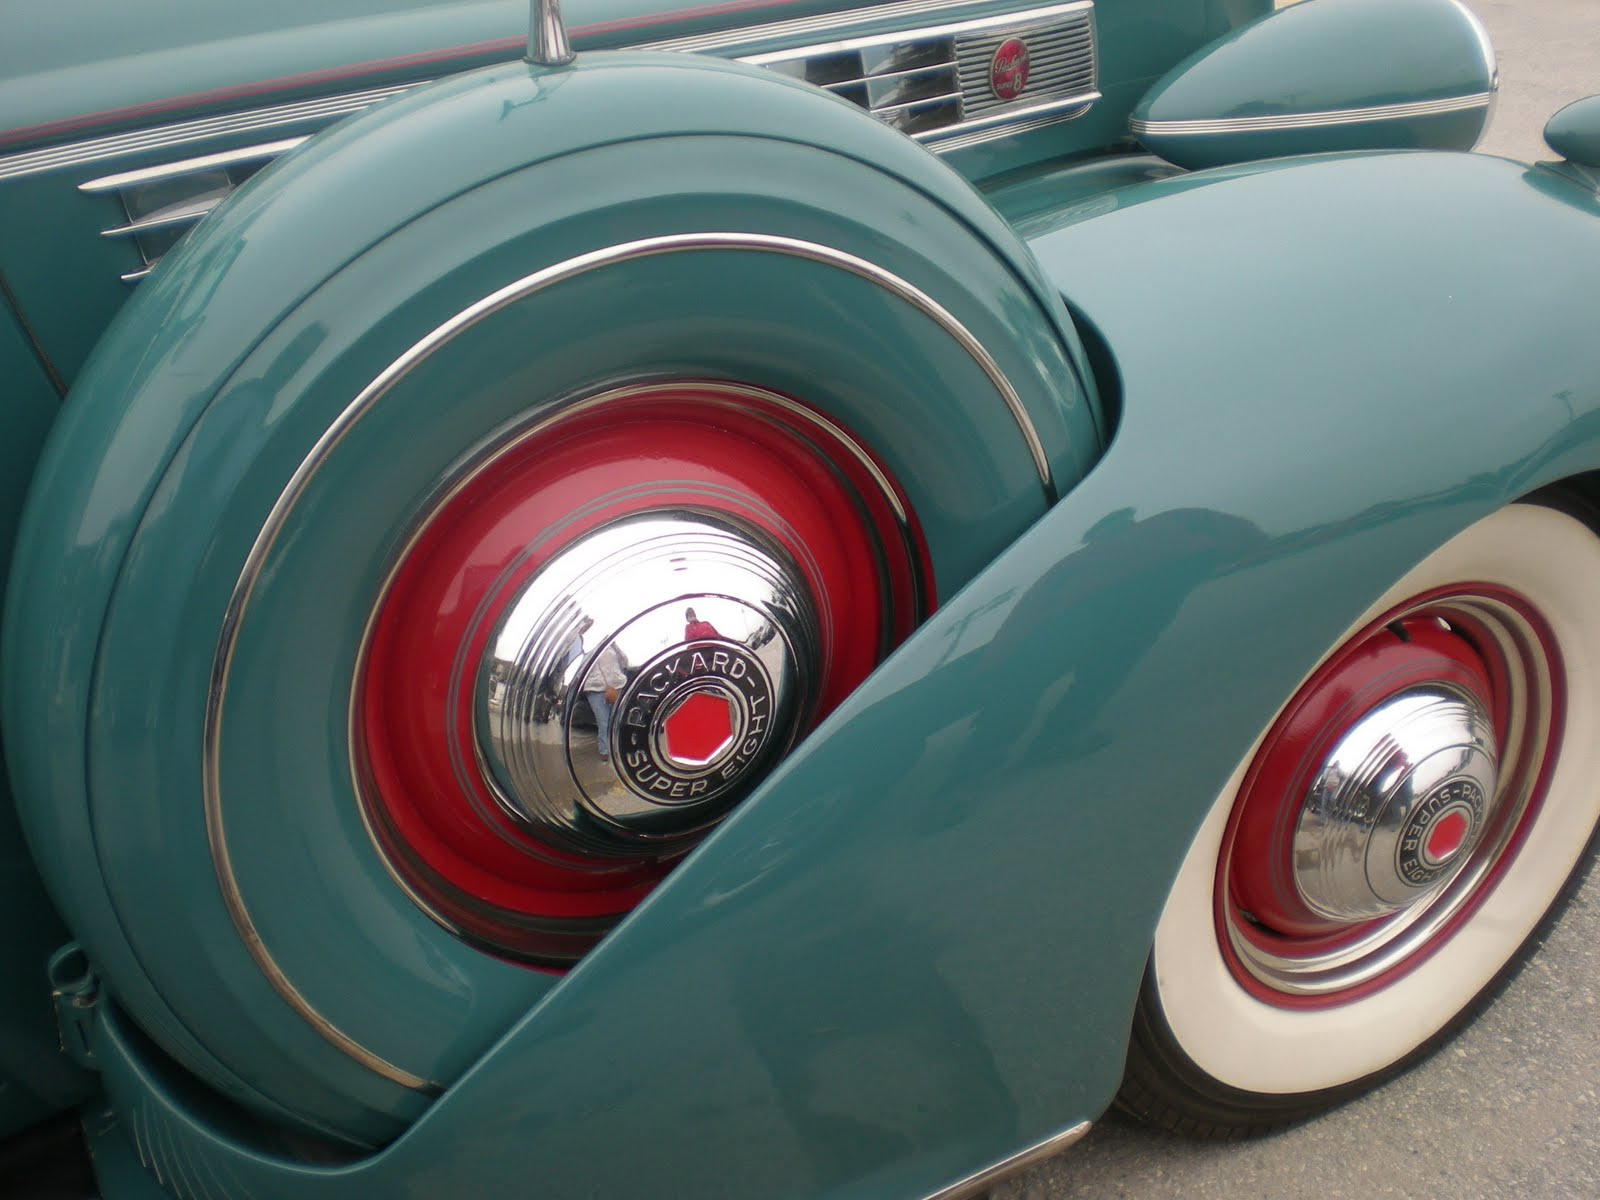 Jarvis House: New York AutoFest Vintage Car Tires And Tail Lights ...